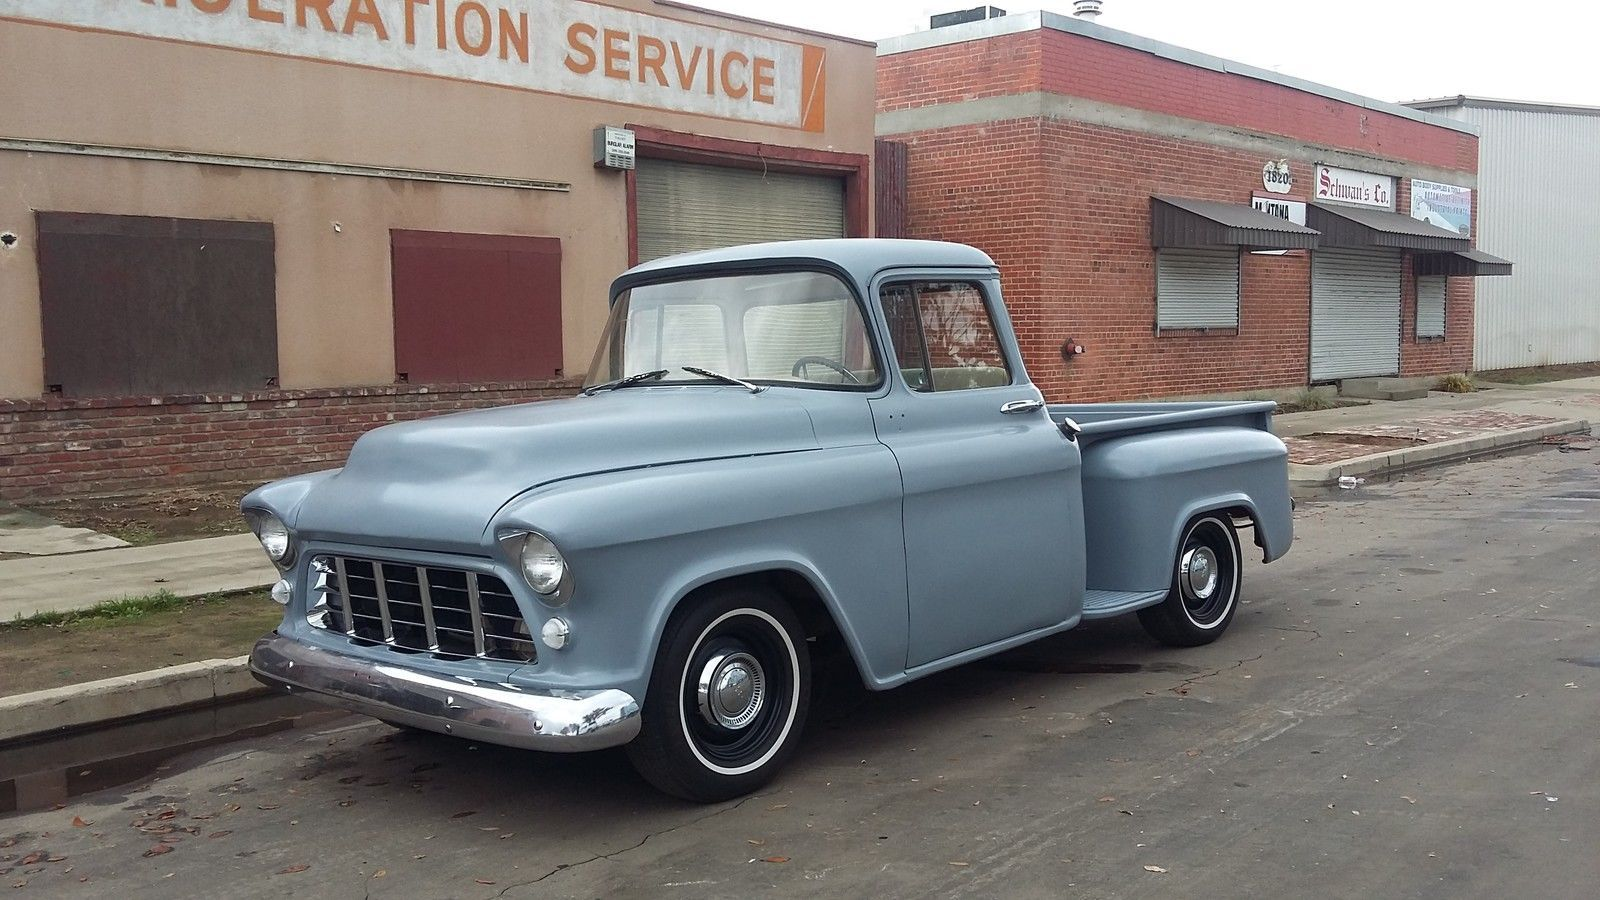 1955 Chevrolet Truck 3100 Short Bed Big Rear Window Chevrolet